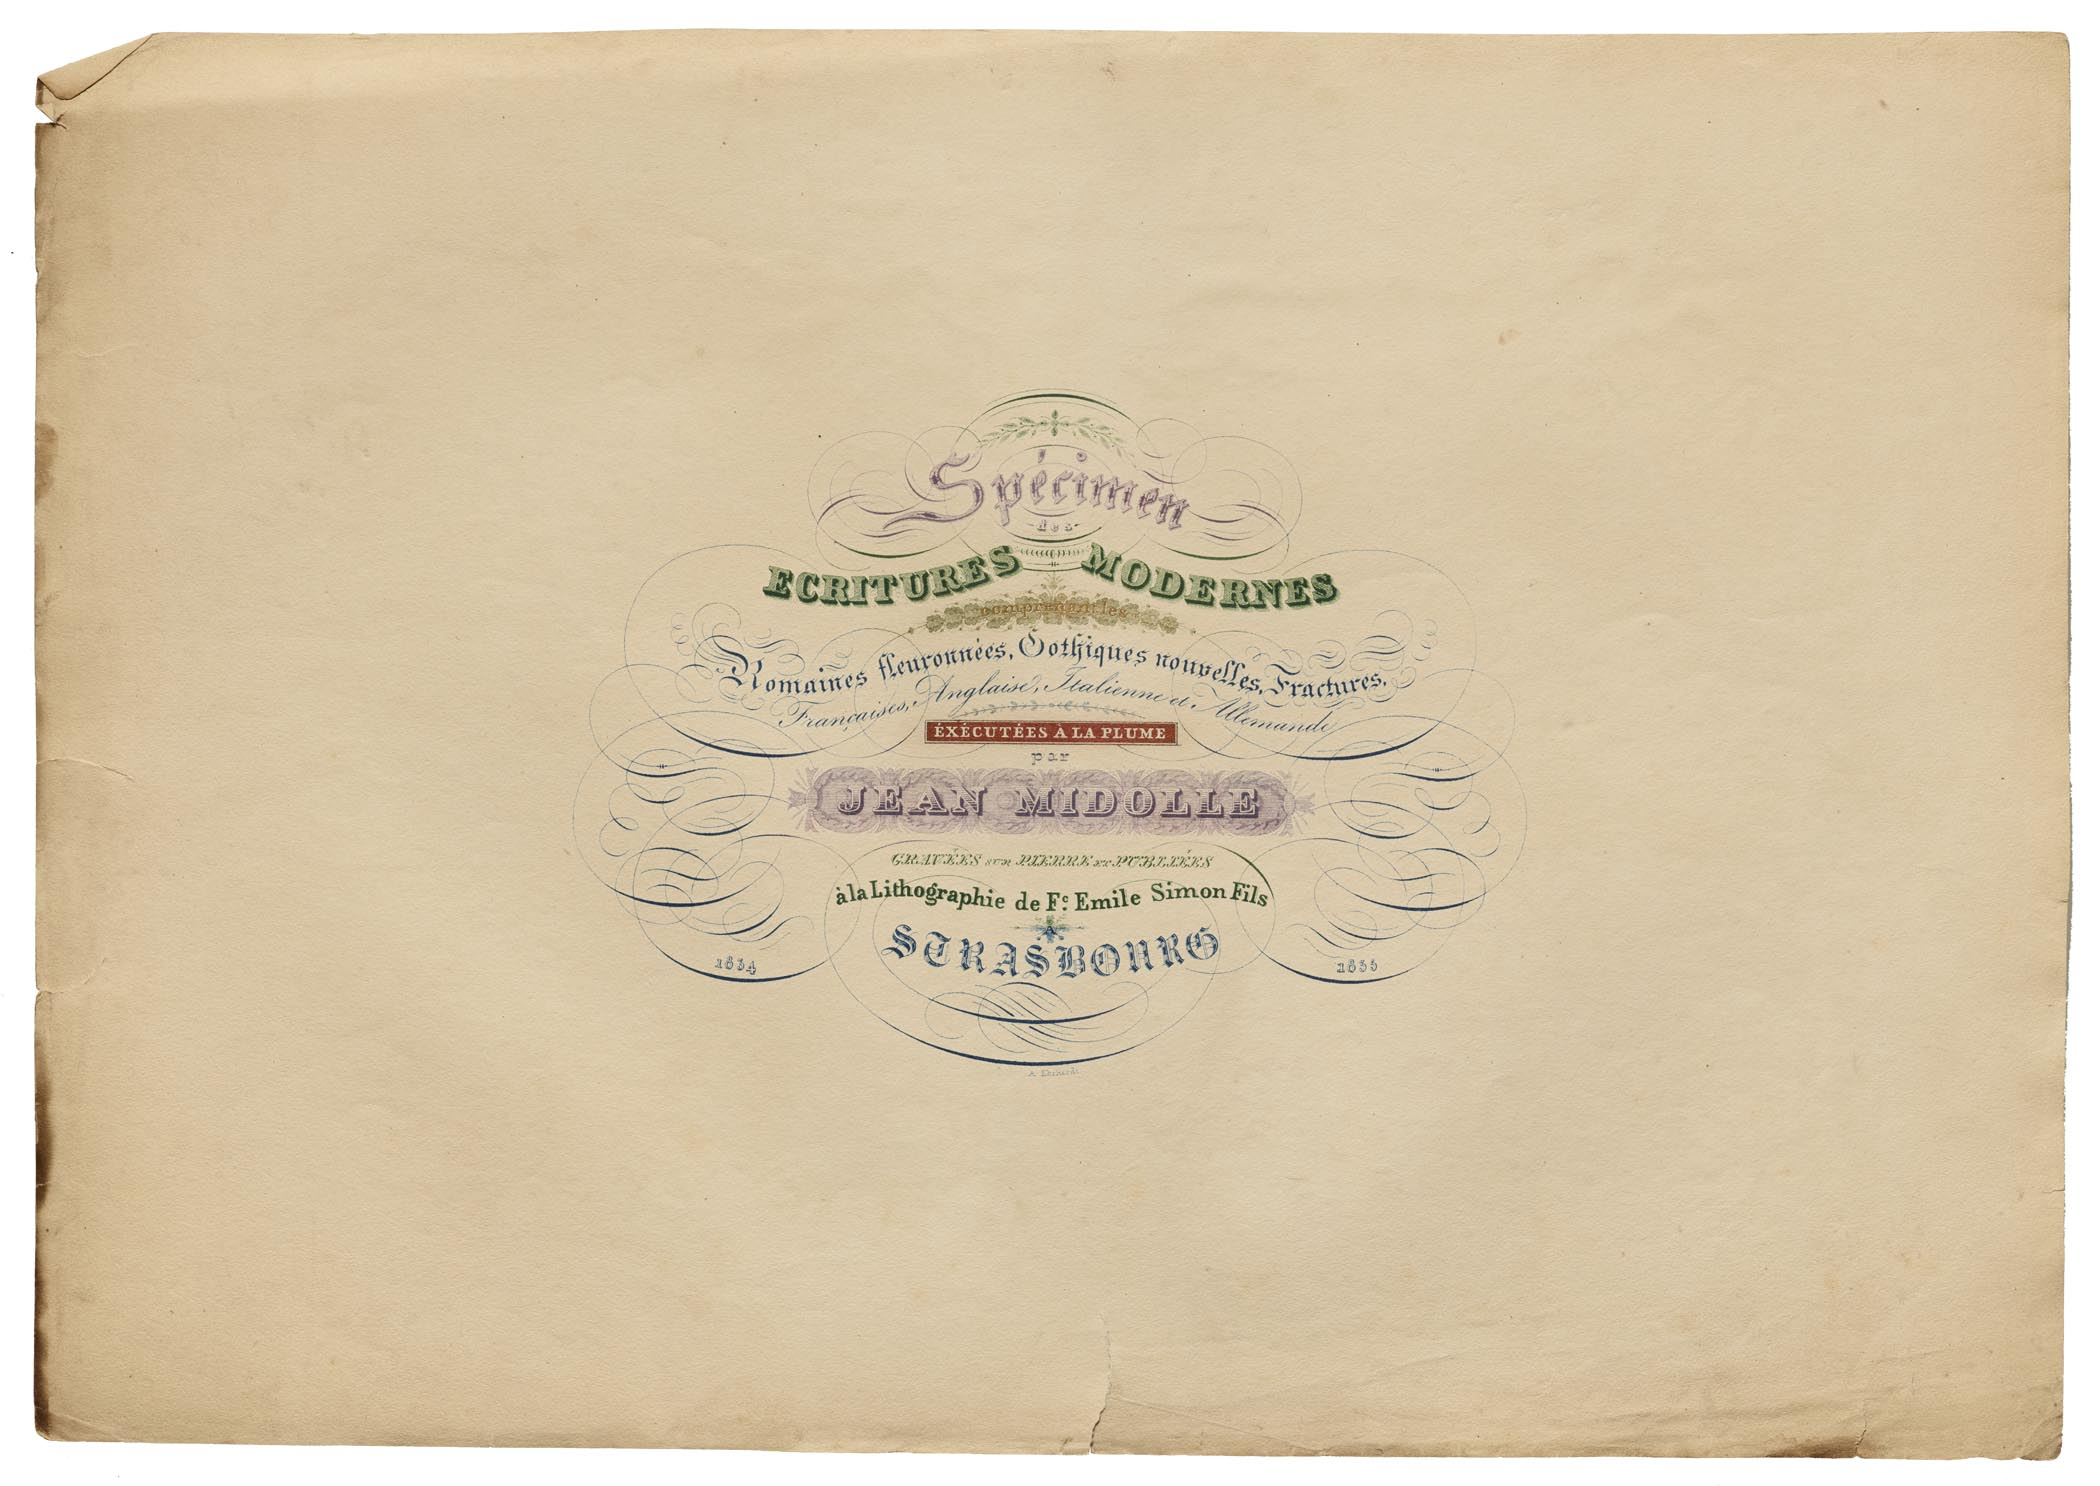 Jean Midolle, Title Page, Emile Simon fils press, France, 1835.